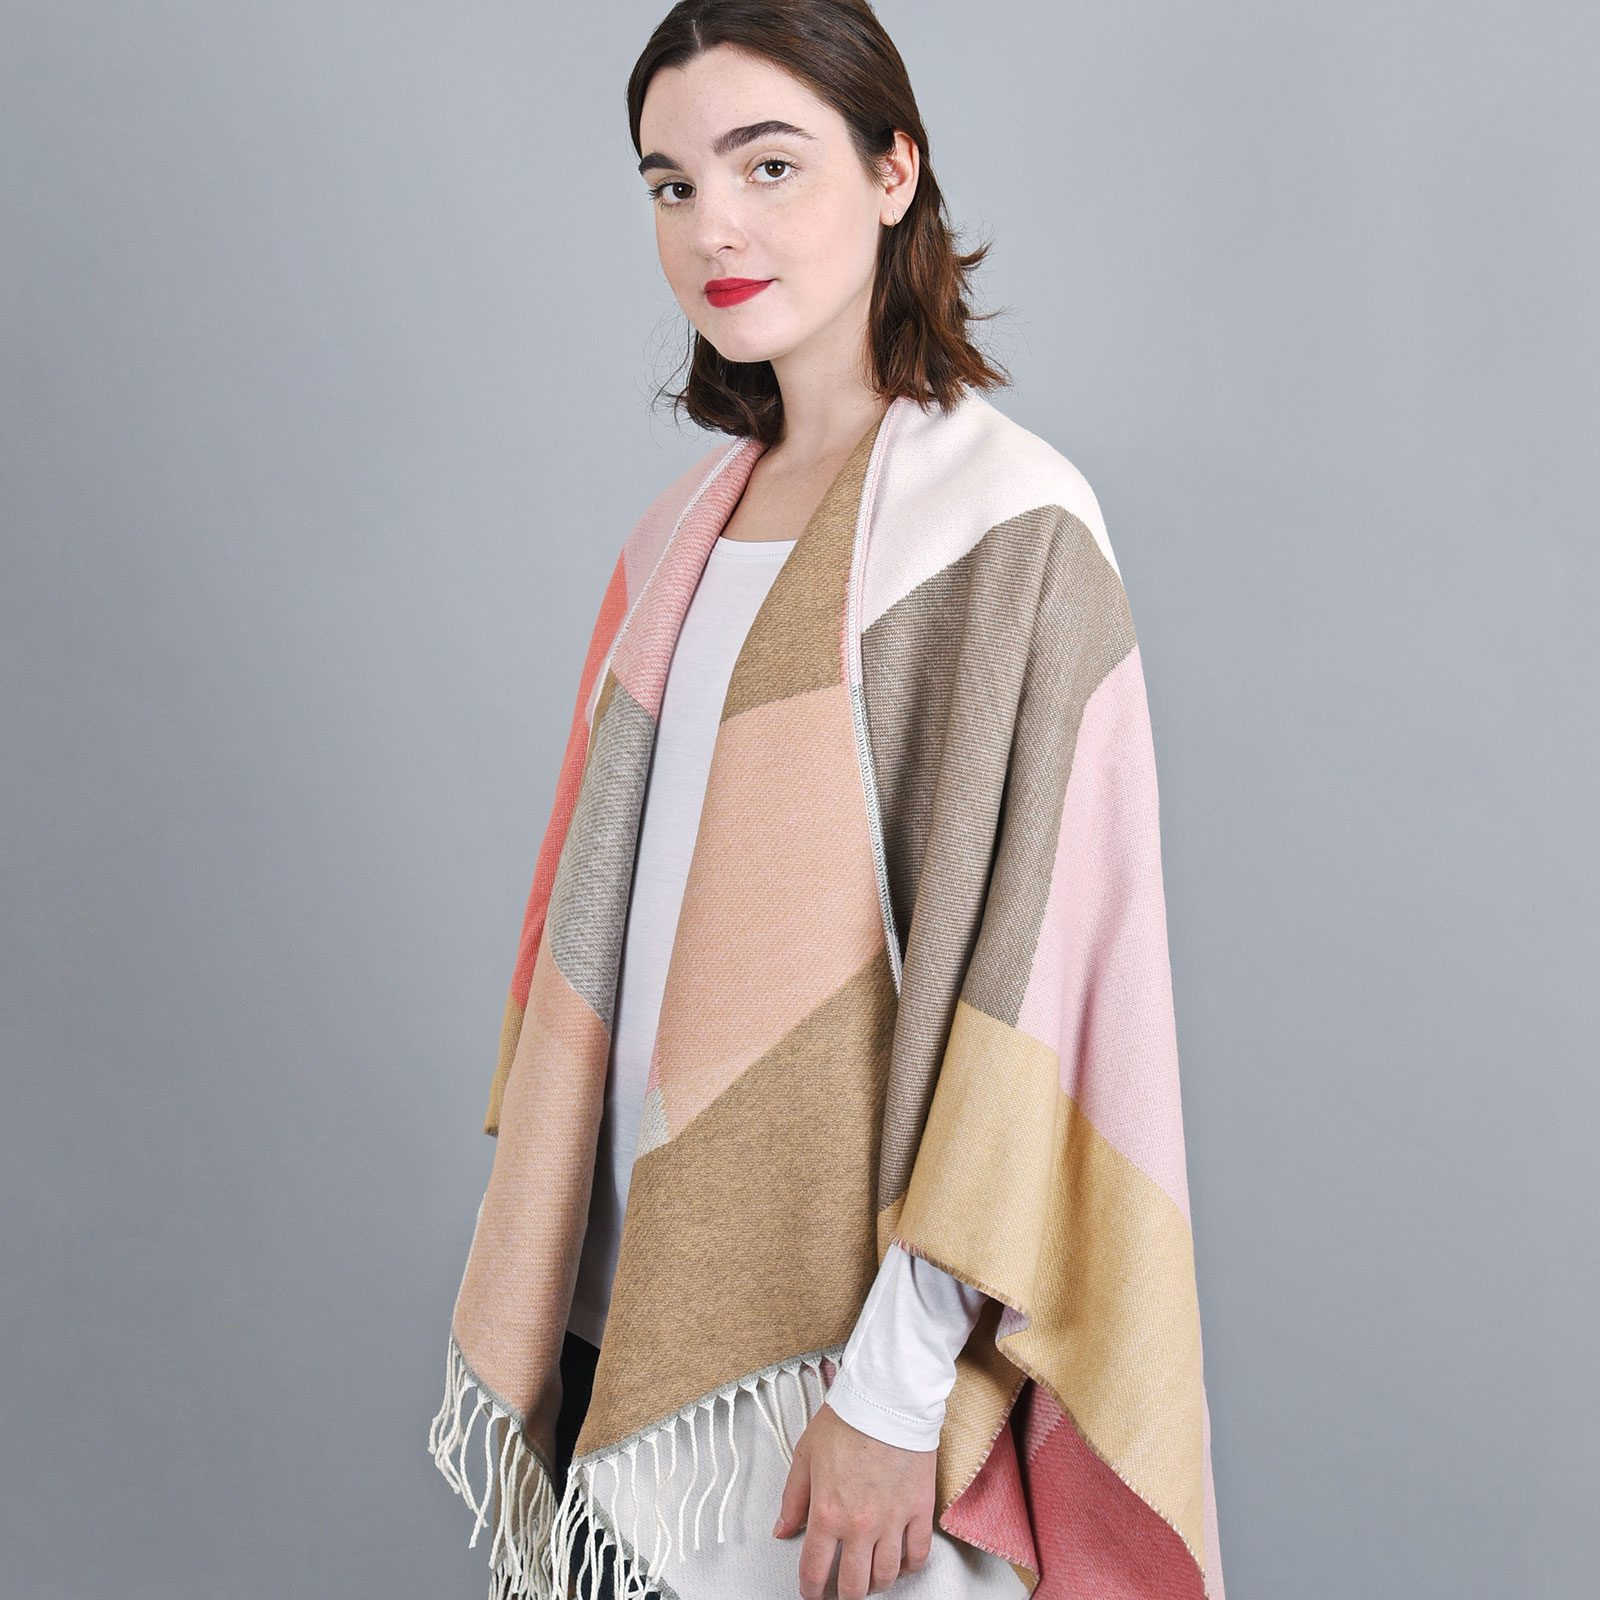 http://lookbook.allee-du-foulard.fr/wp-content/uploads/2019/01/AT-04152-VF16-2-poncho-hiver-rose-taupe-1600x1600.jpg